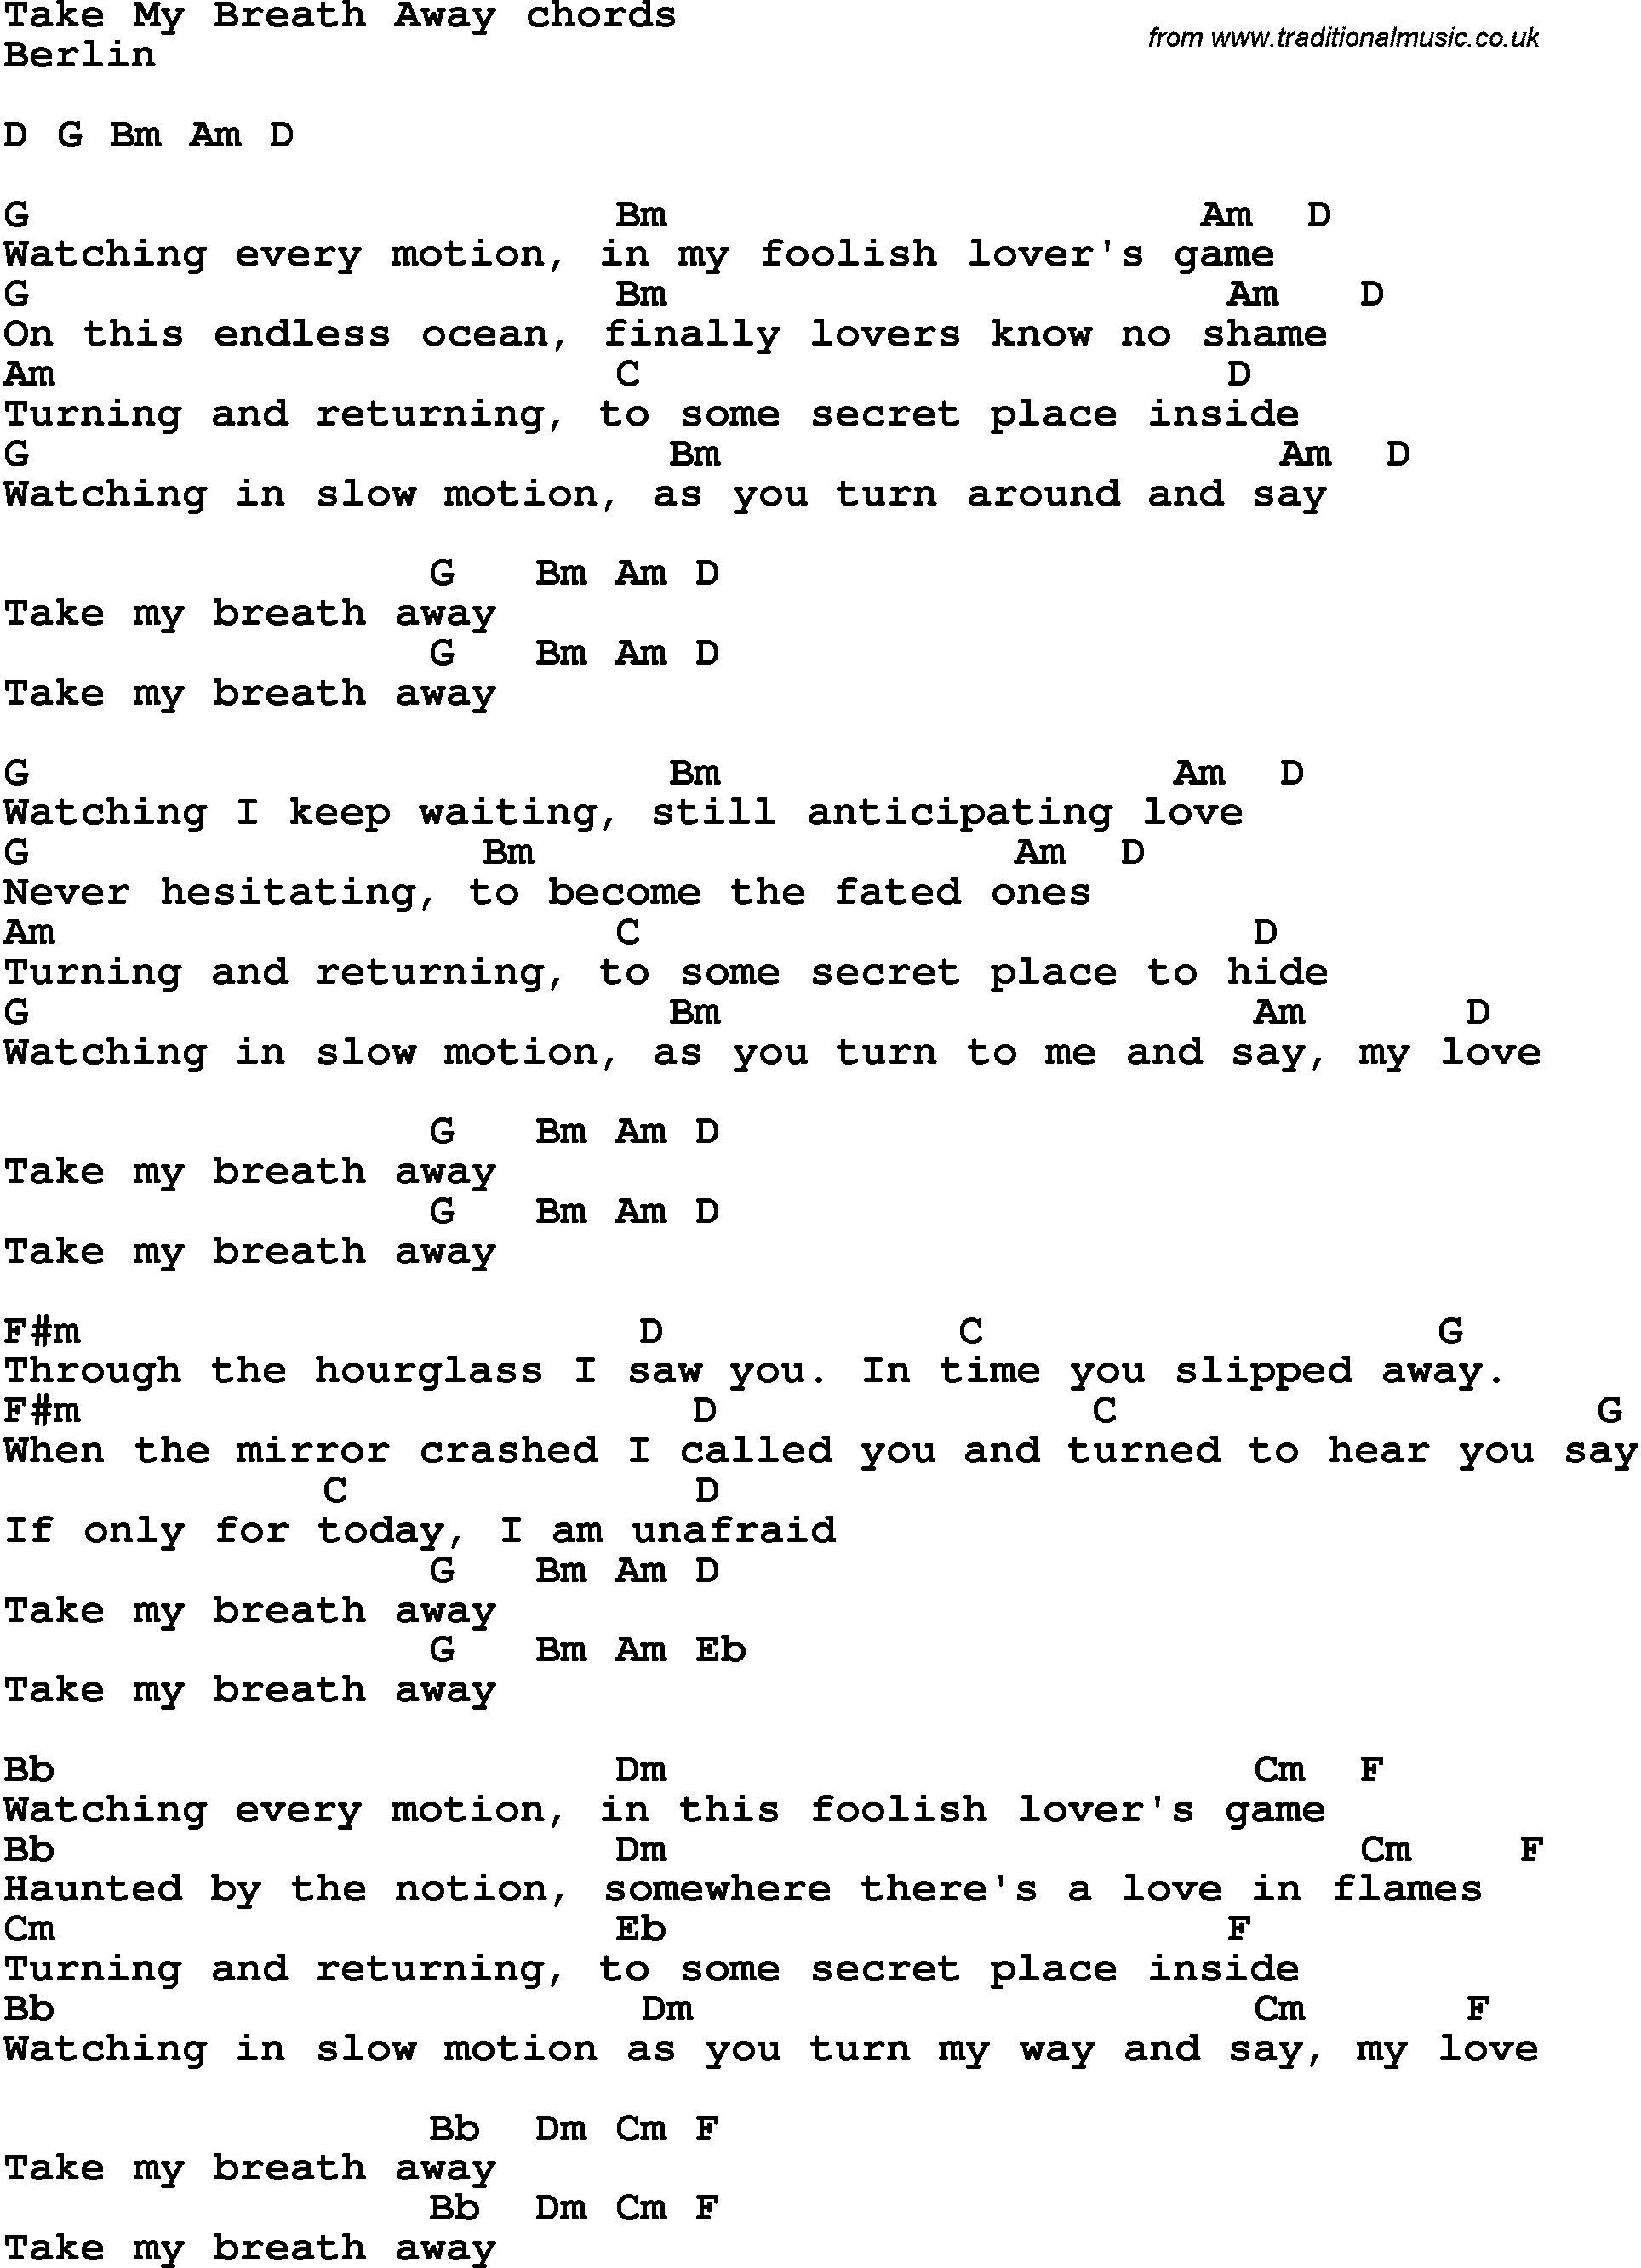 Song Lyrics With Guitar Chords For Take My Breath Away